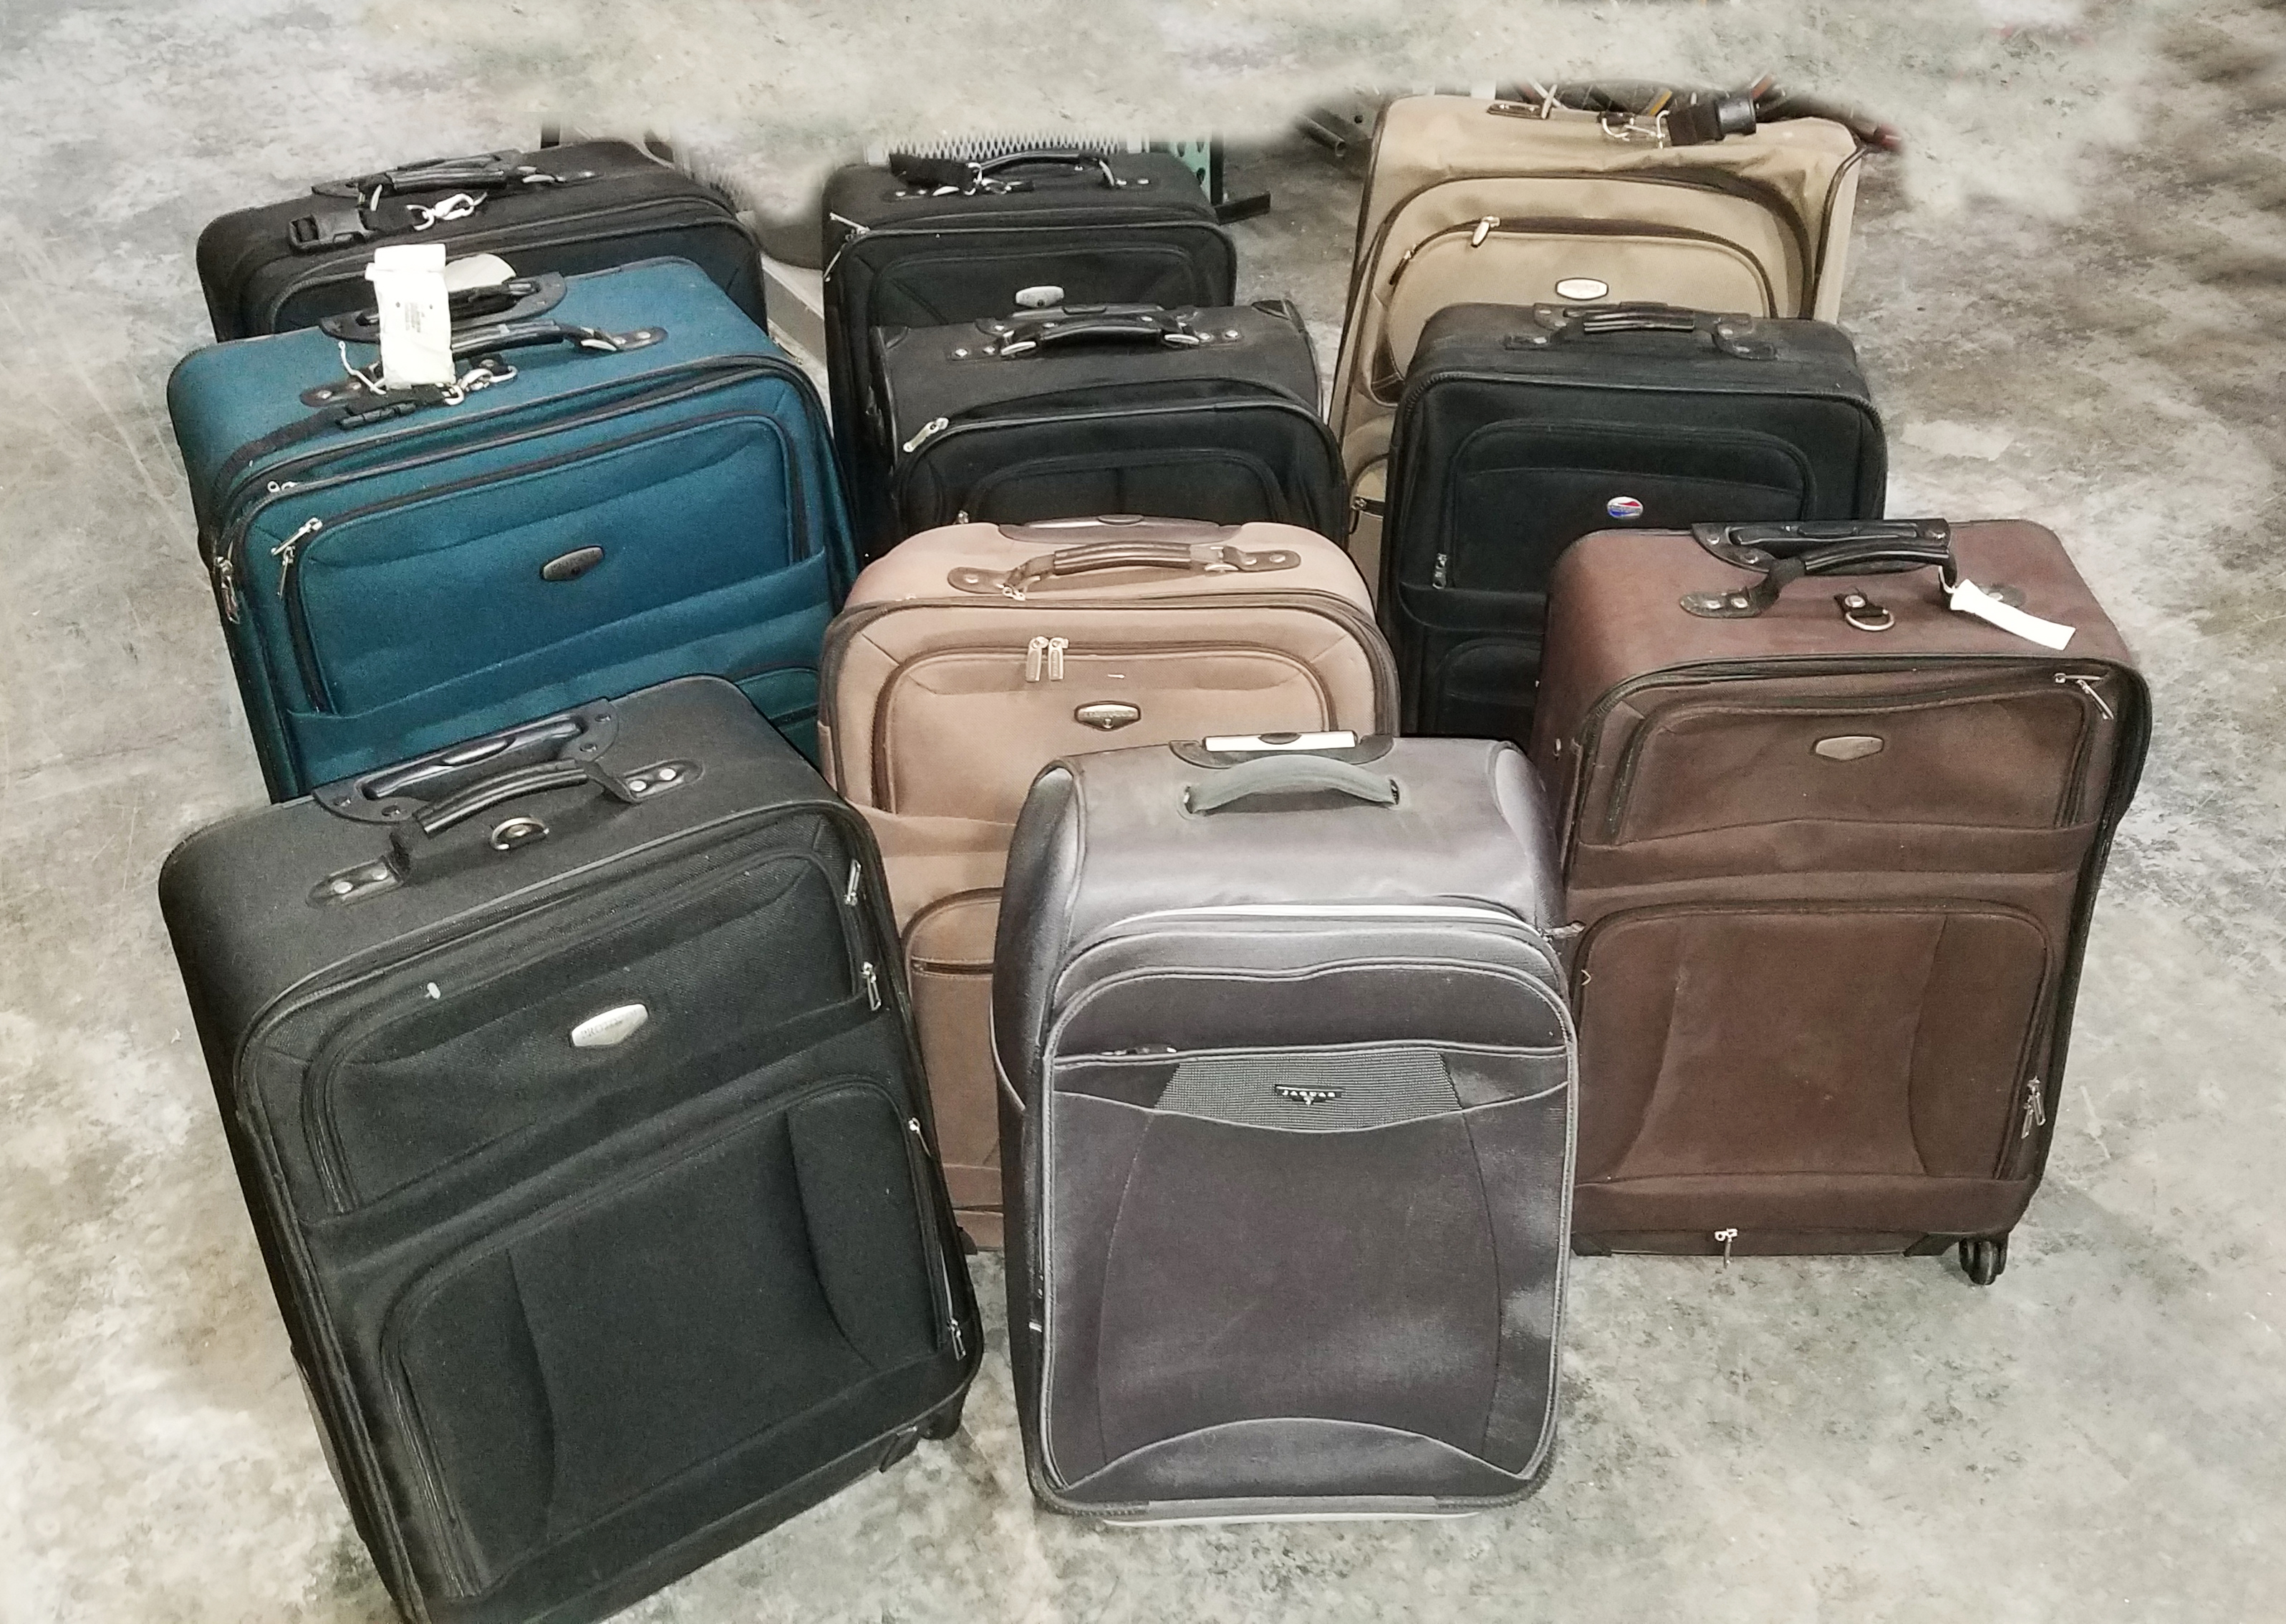 Luggage Travel Size Wheels Nov 2018 10 p